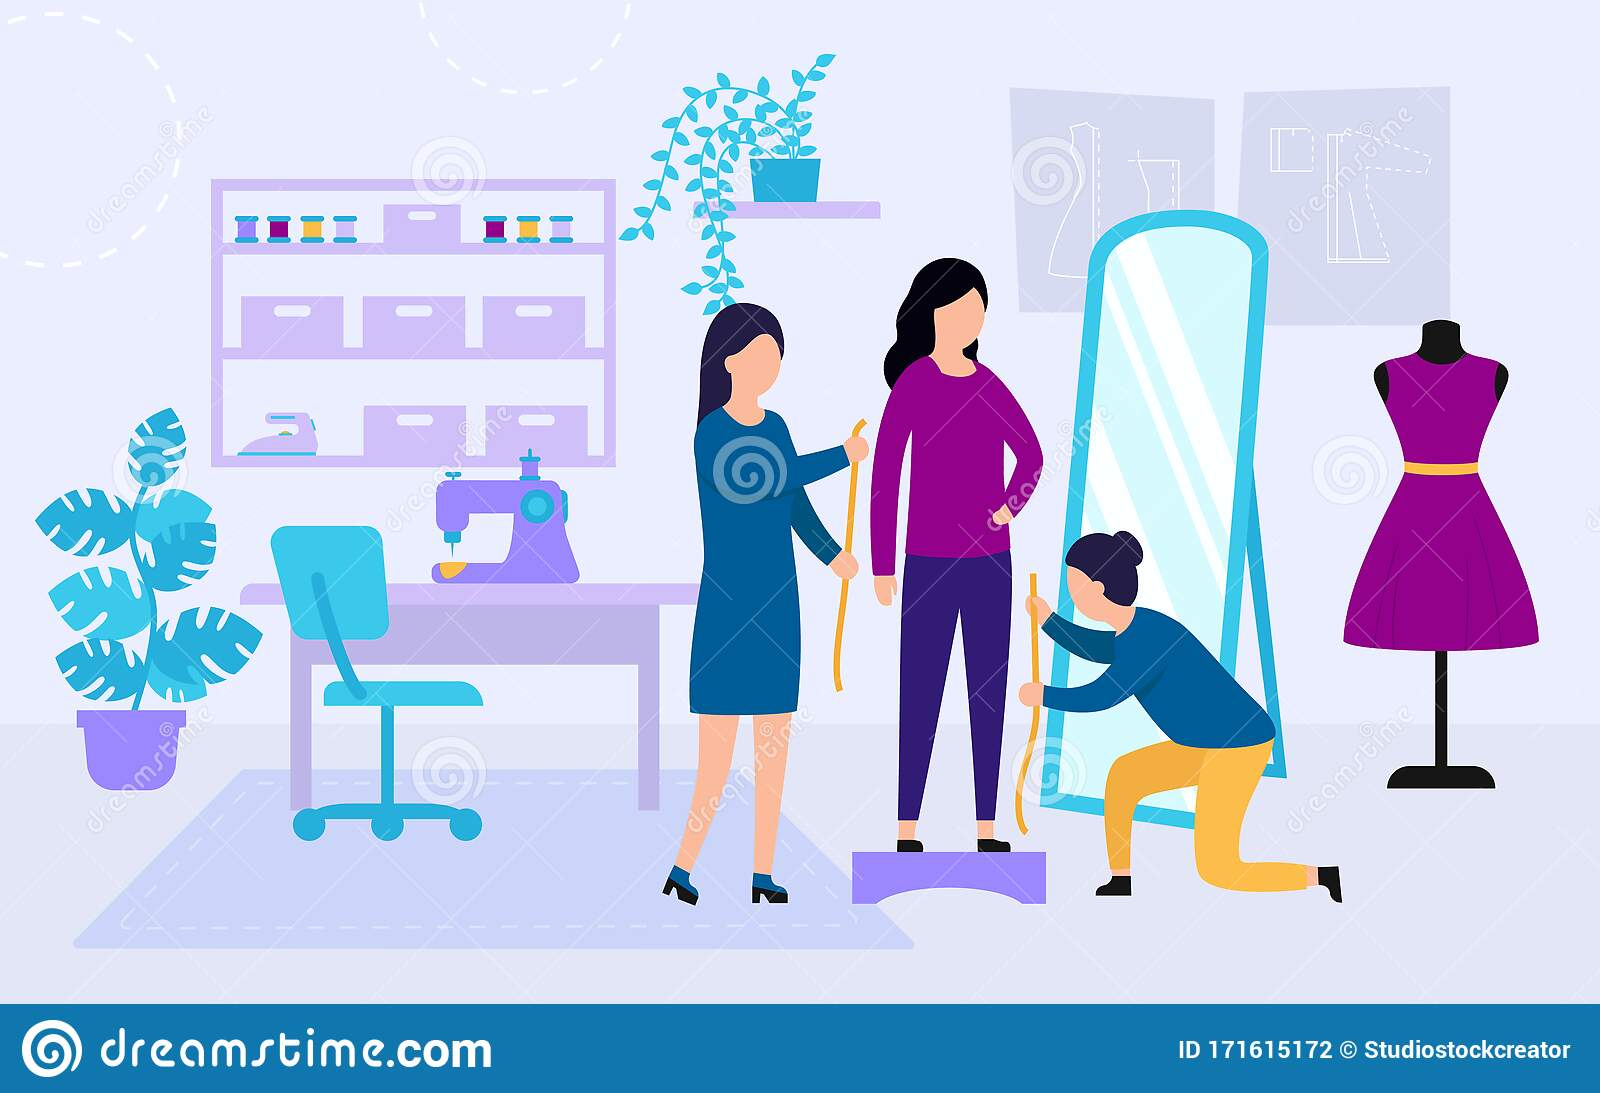 Sewing Studio Concept Process Of Designing And Making Clothes Dressmakers Are Measuring Girl S Clothes Size Clothing Stock Vector Illustration Of Garment Character 171615172